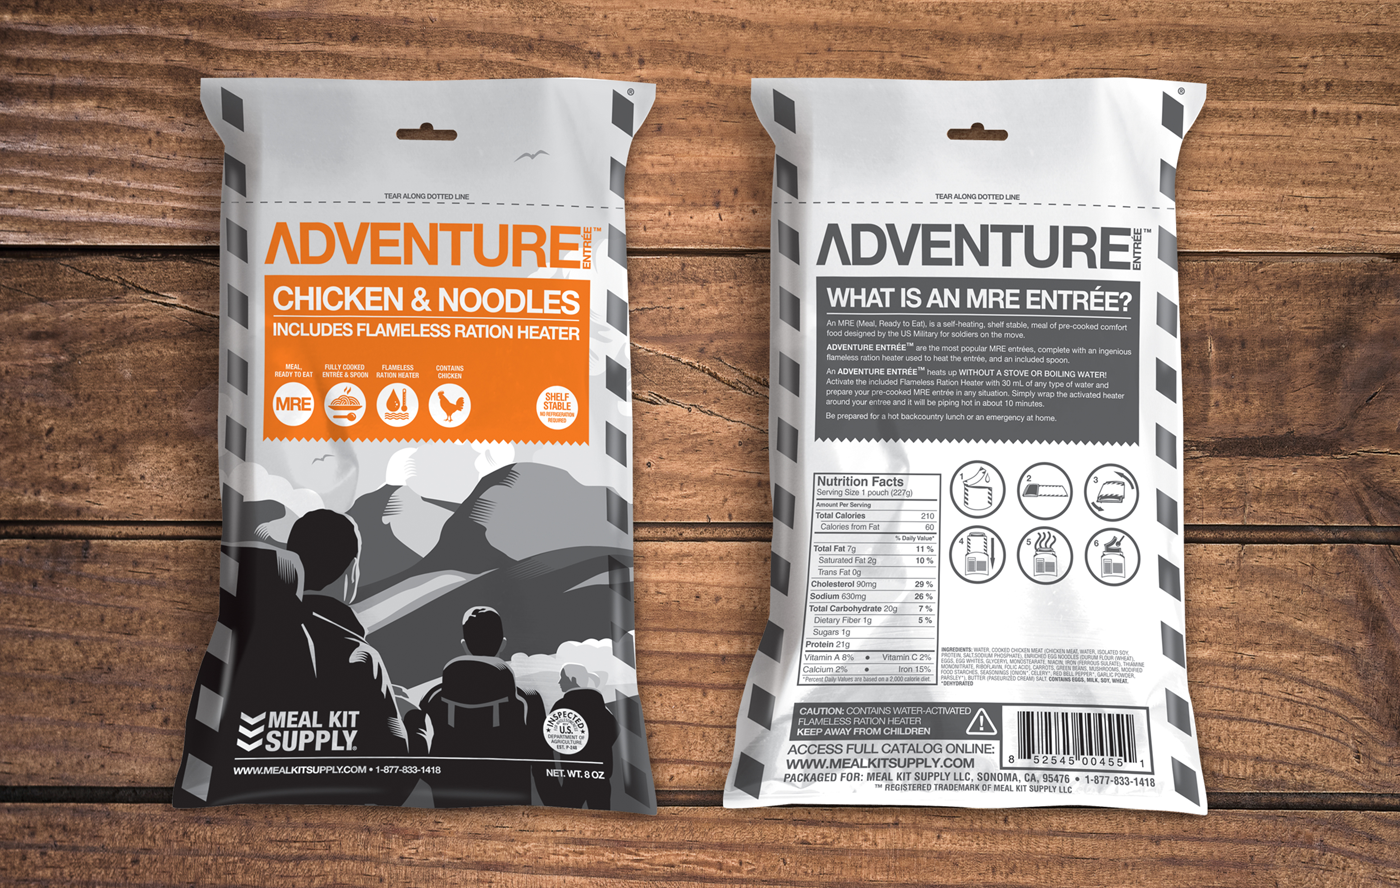 Meal Kit Supply Adventure Kit Chicken and Noodles